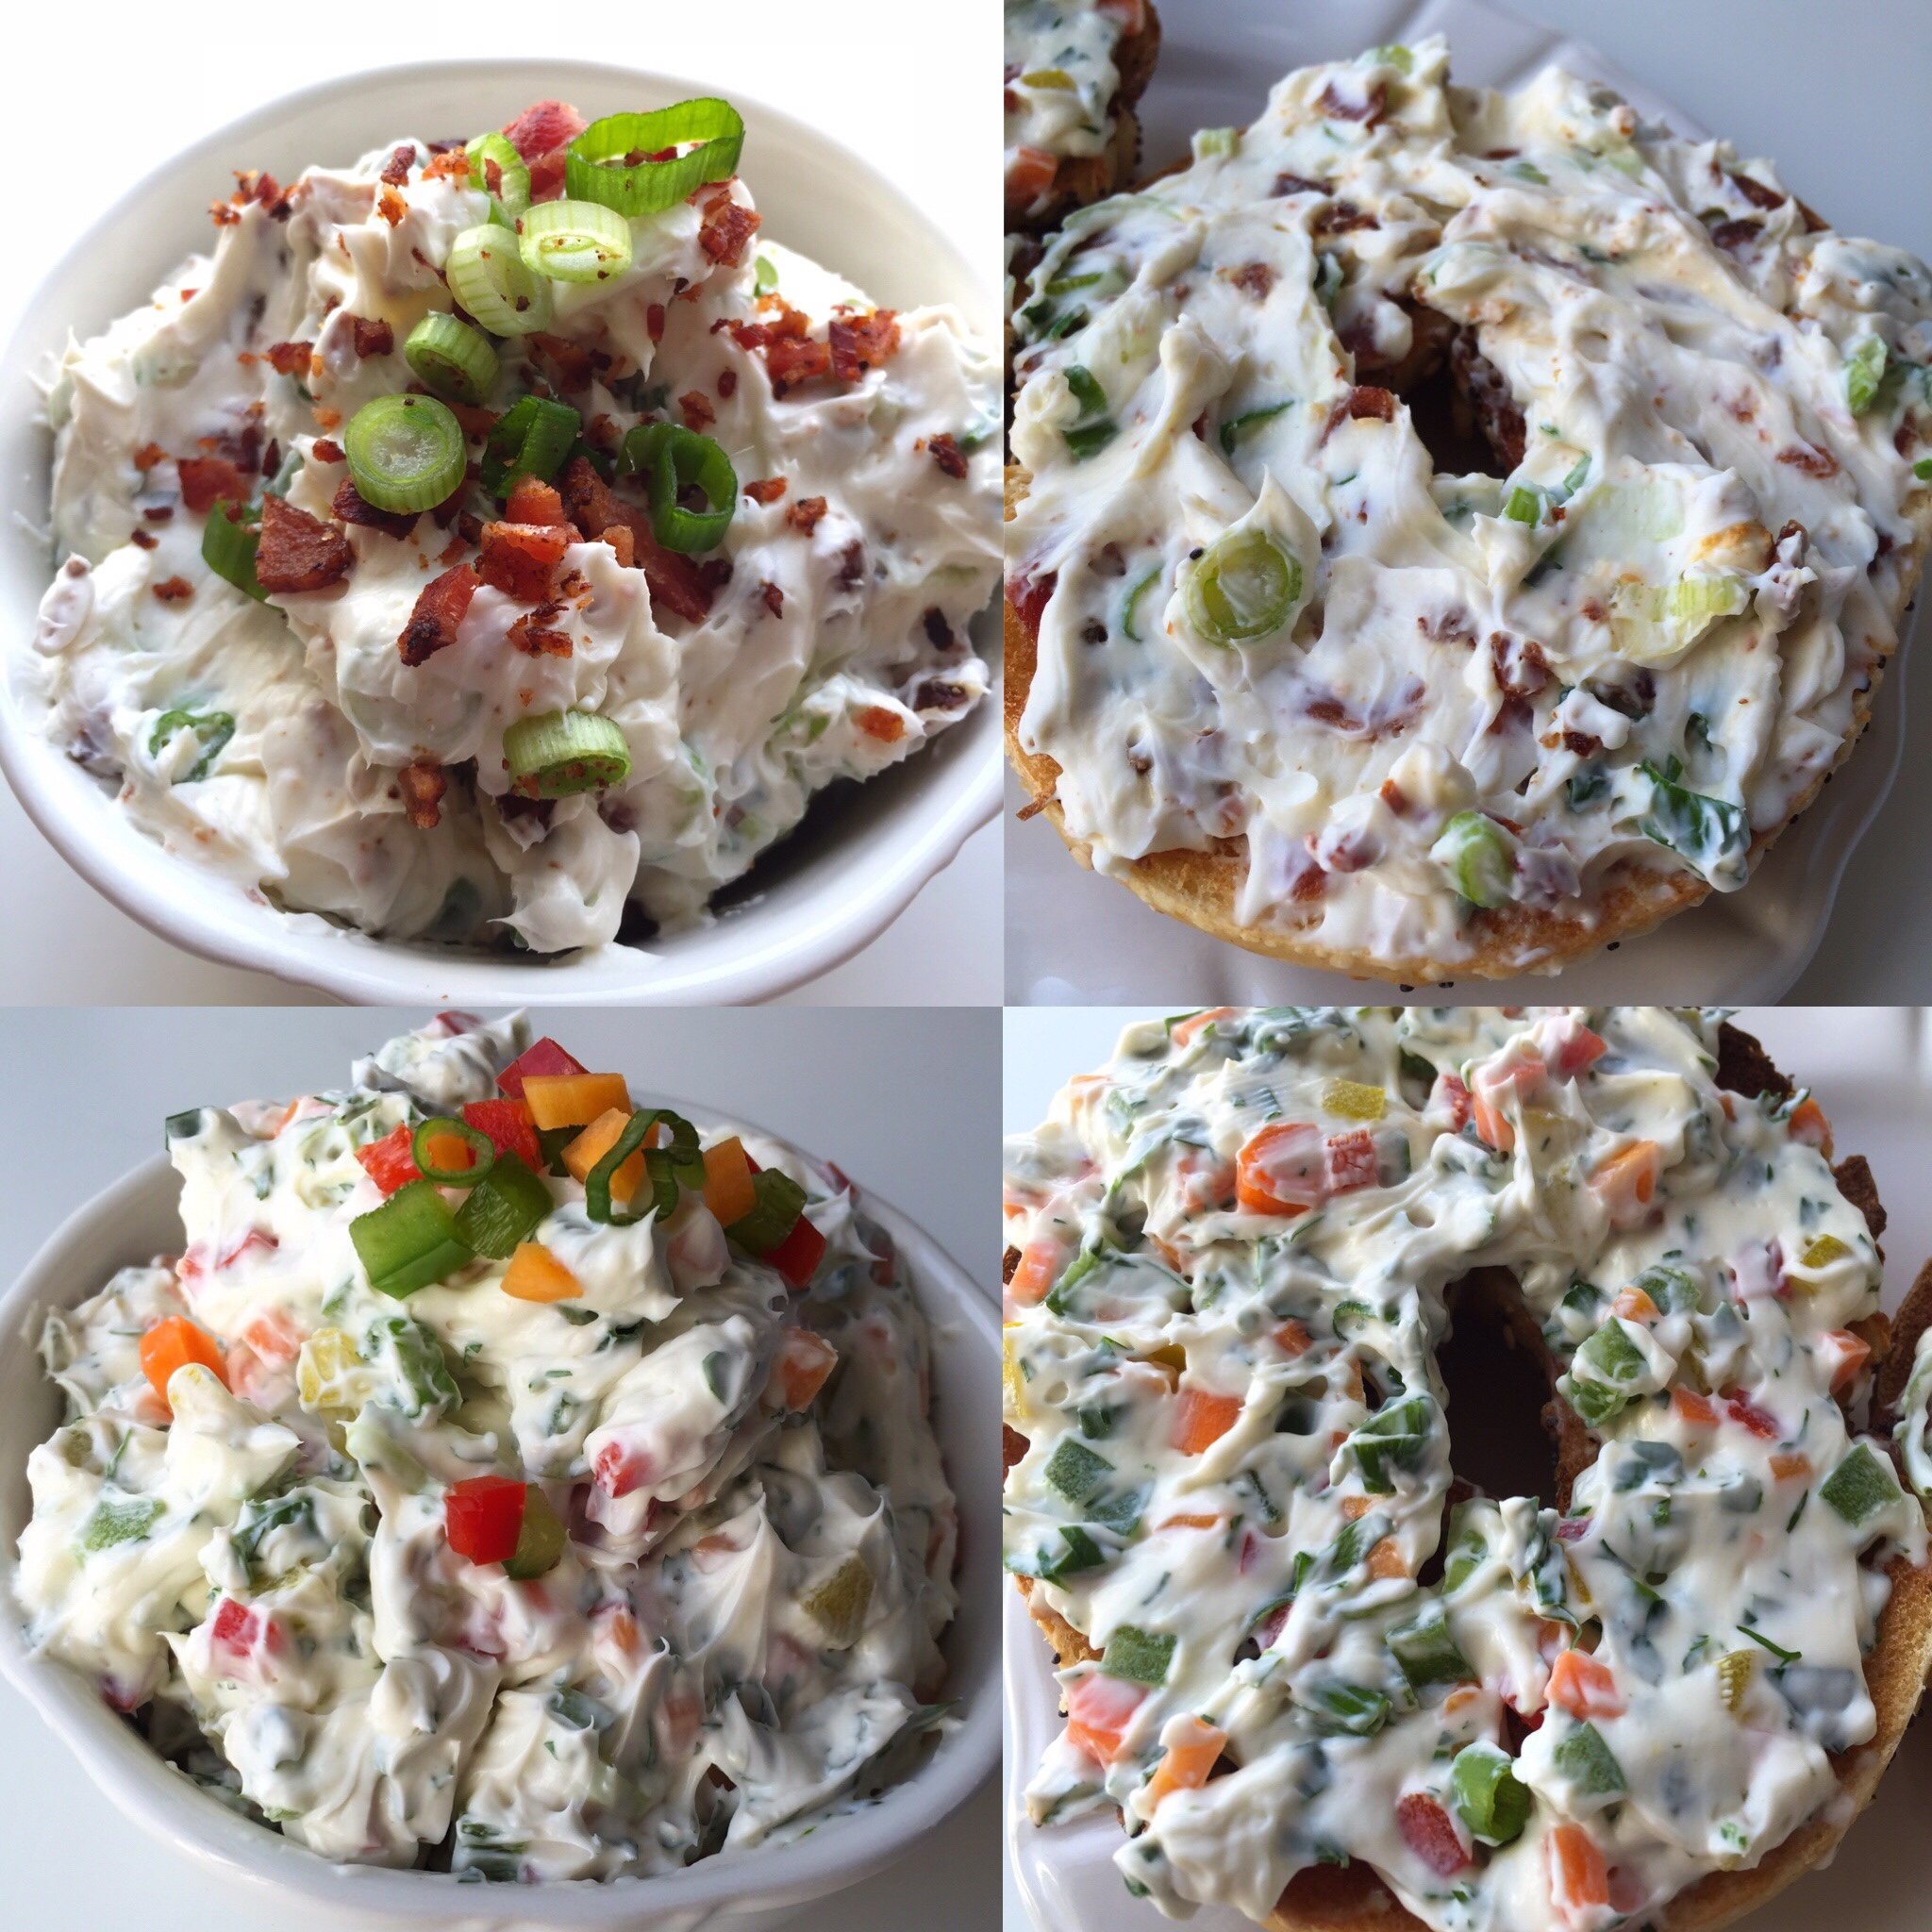 Flavored Cream Cheese